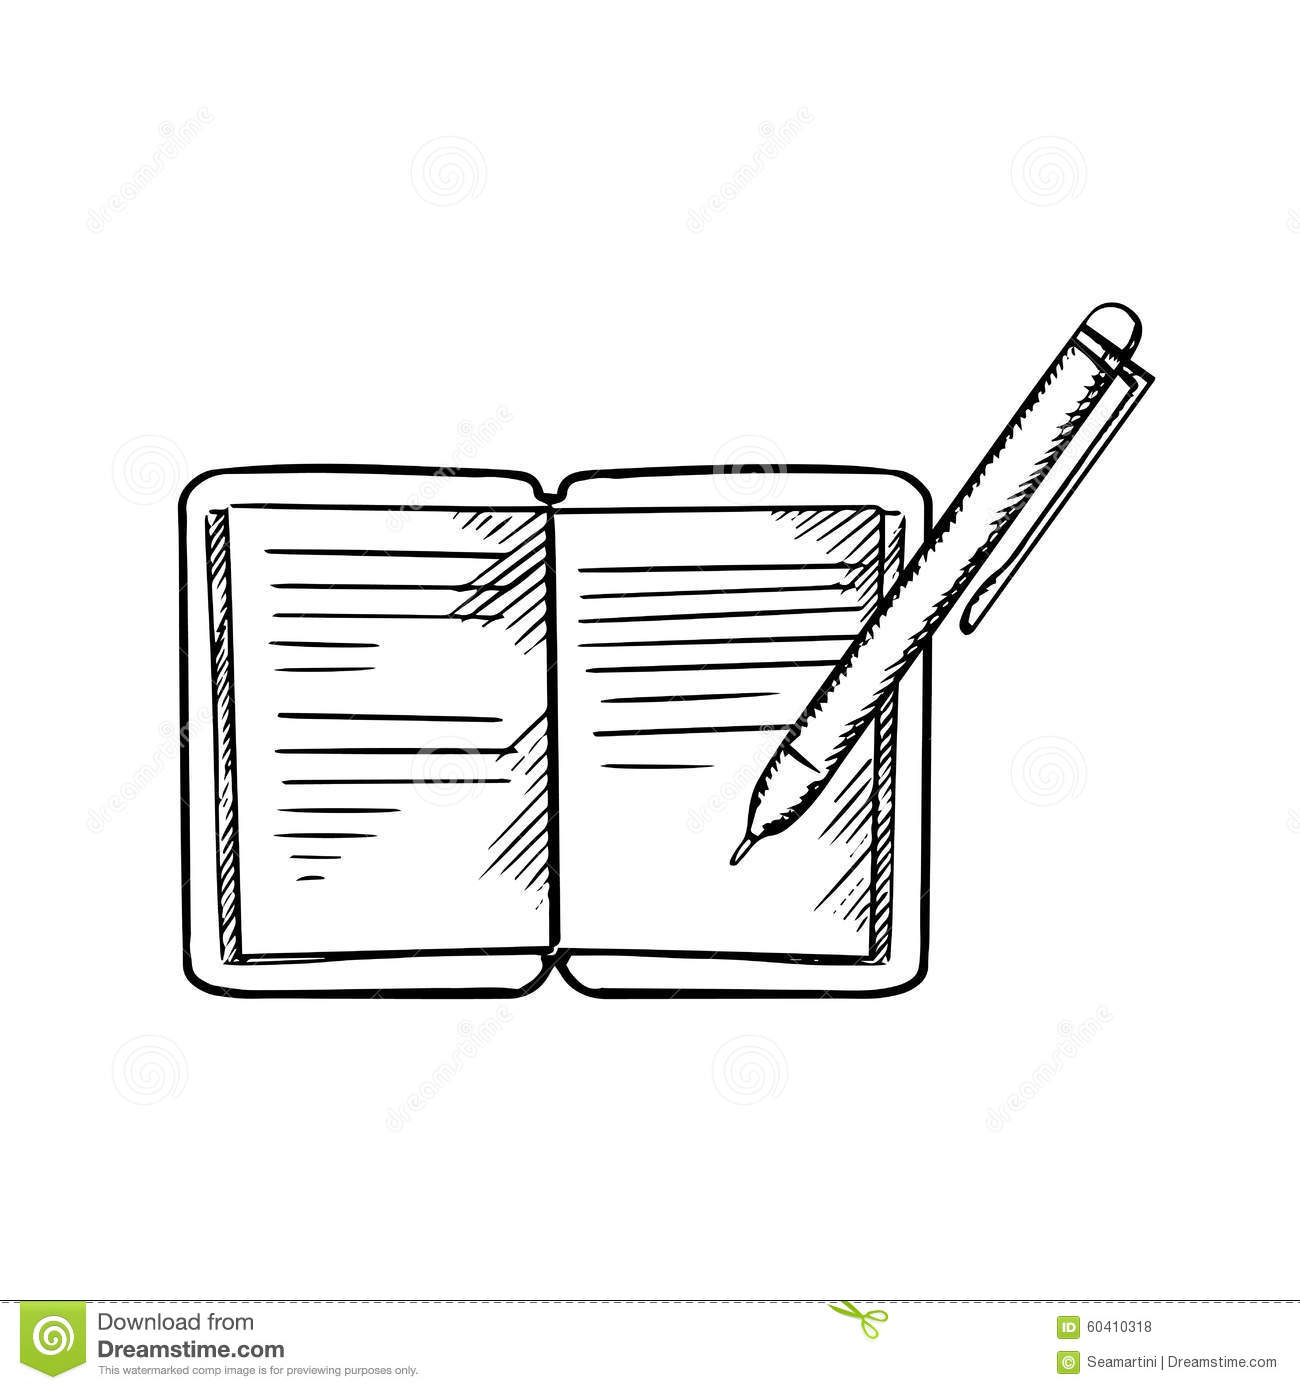 Open Notebook With Pen, Sketch Image Stock Vector